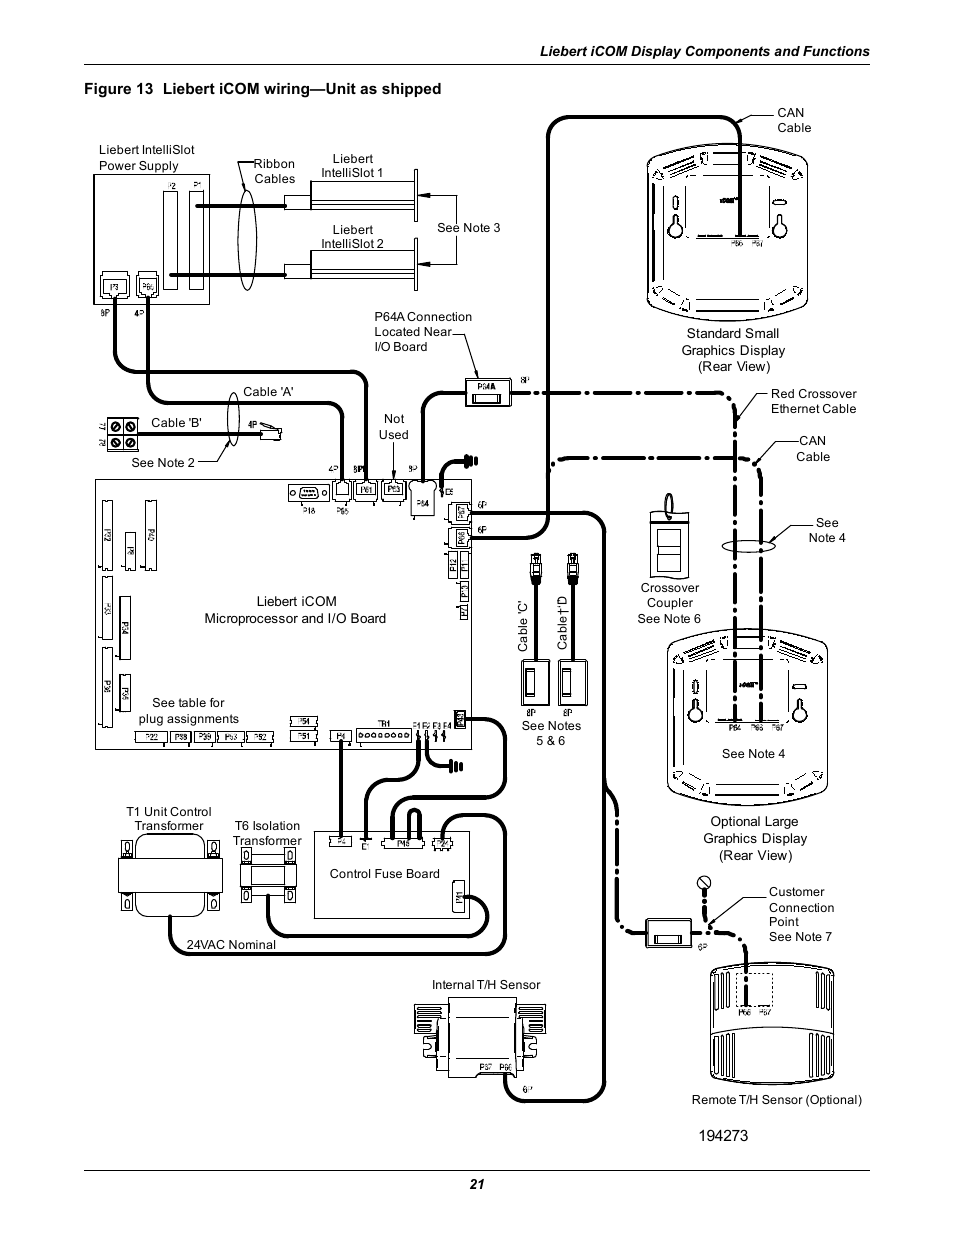 Figure 13 Liebert Icom Wiring Unit As Shipped Emerson Liebert Wiring  Liebert Diagram Gtx2-2000Rtb Liebert Wiring Diagram